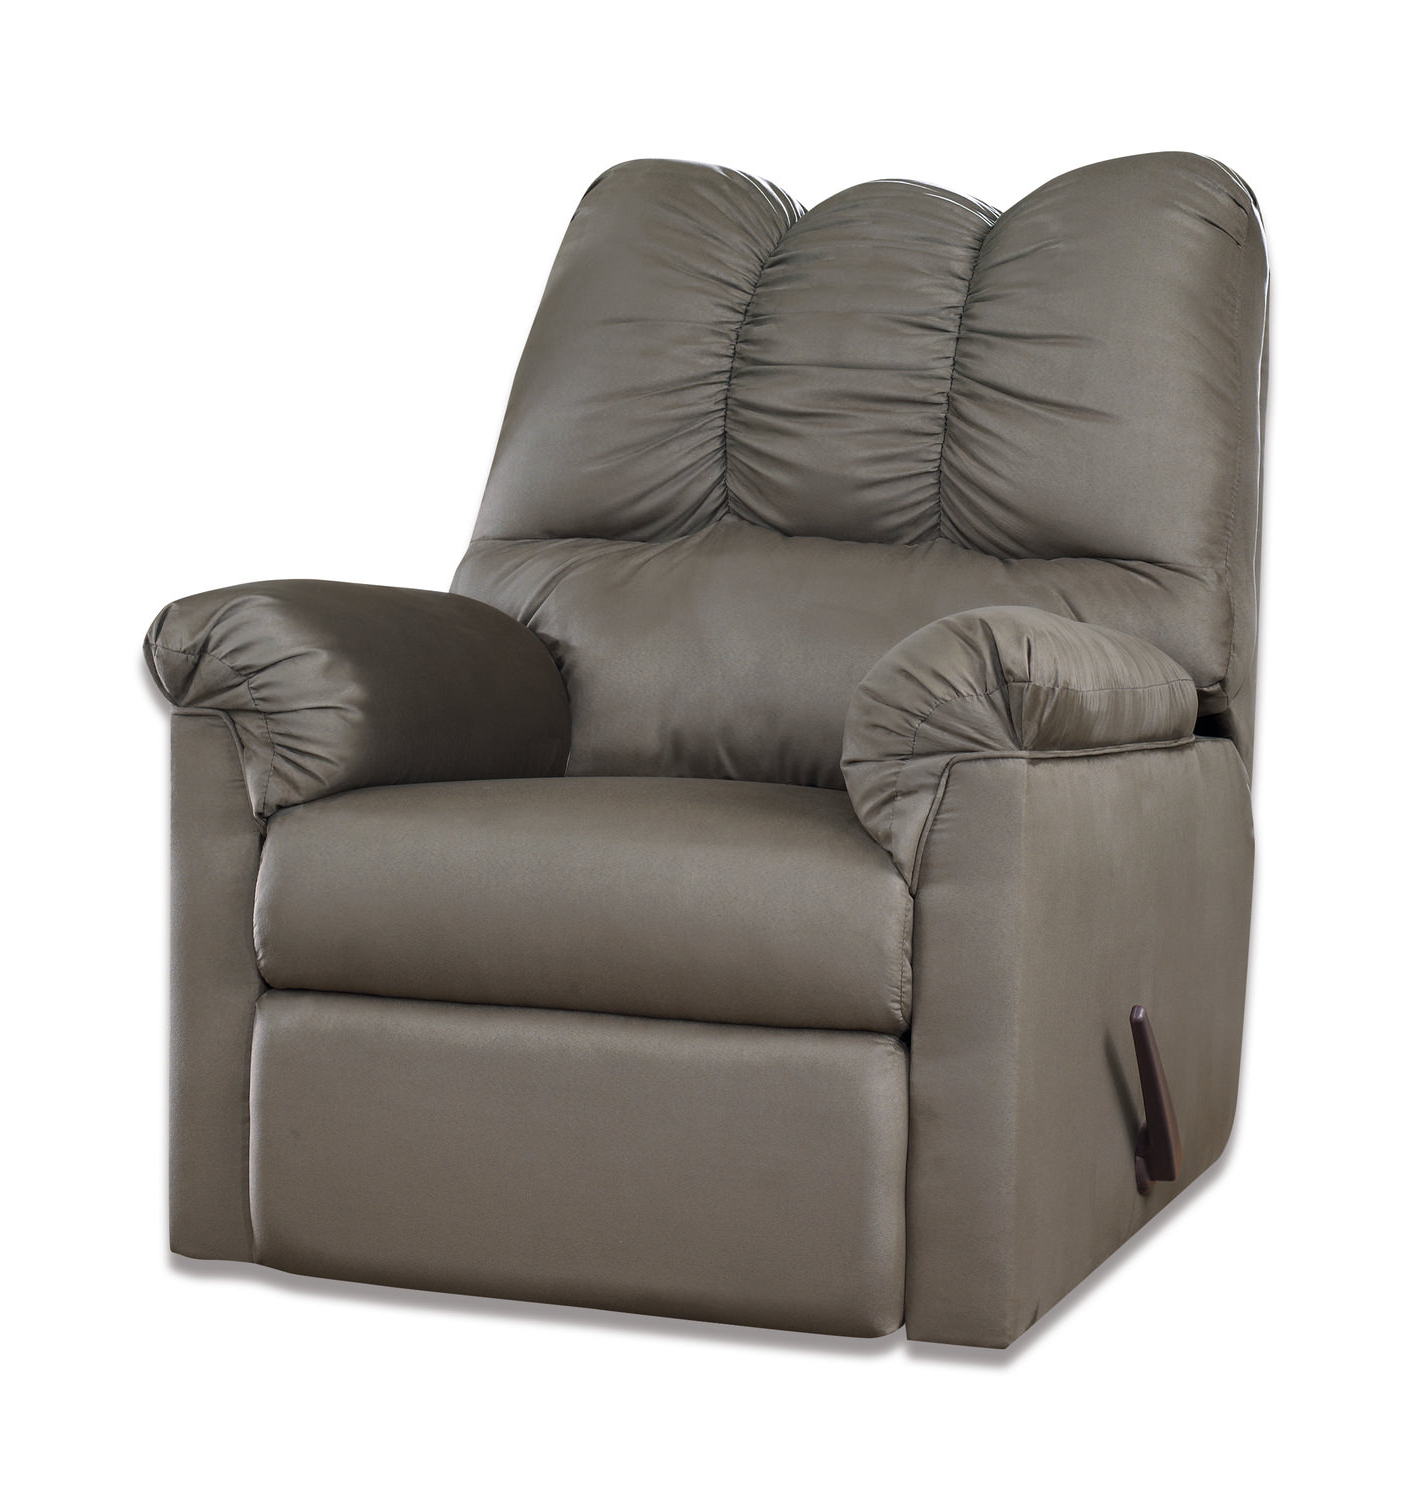 Theo Ii Swivel Chairs Inside Well Known Recliners – Leather, Rocker & Swivel – Hom Furniture (View 19 of 20)